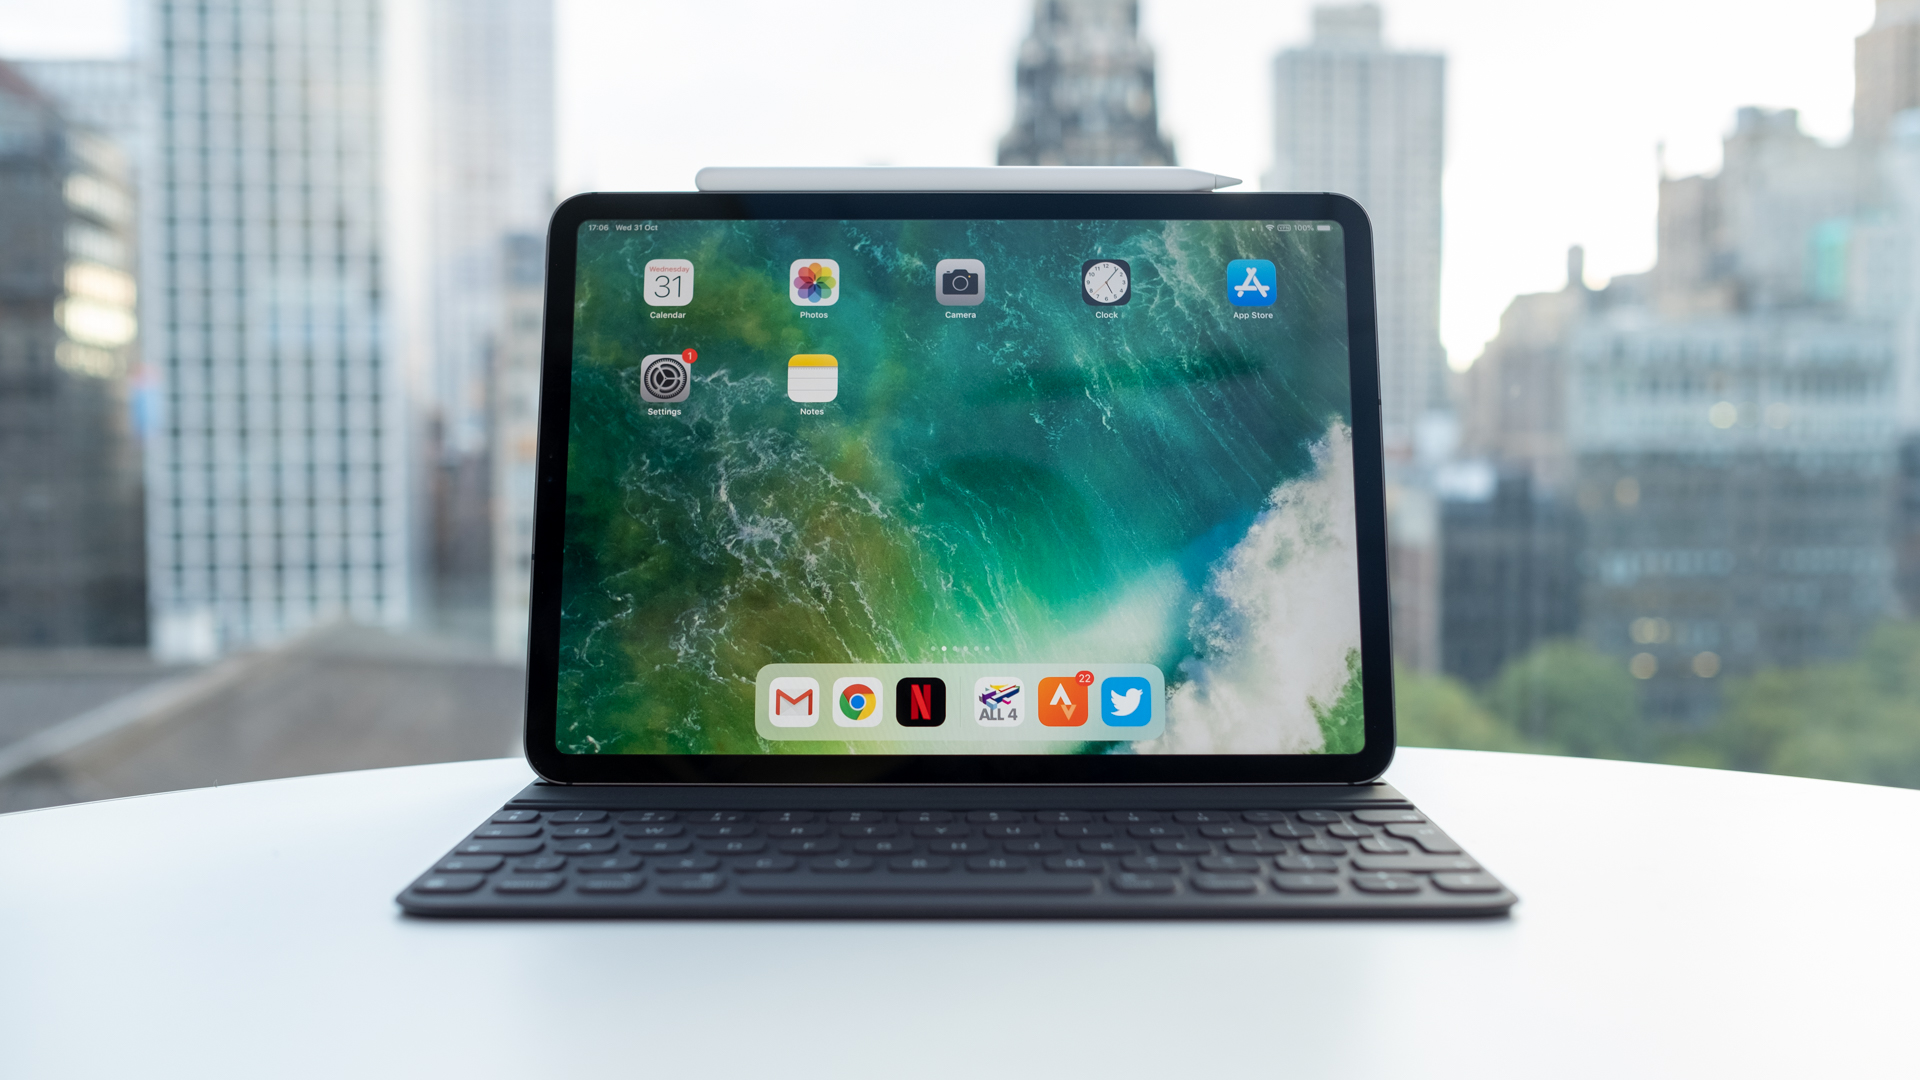 Phil Schiller talked about the A12X chip in the new iPad Pro